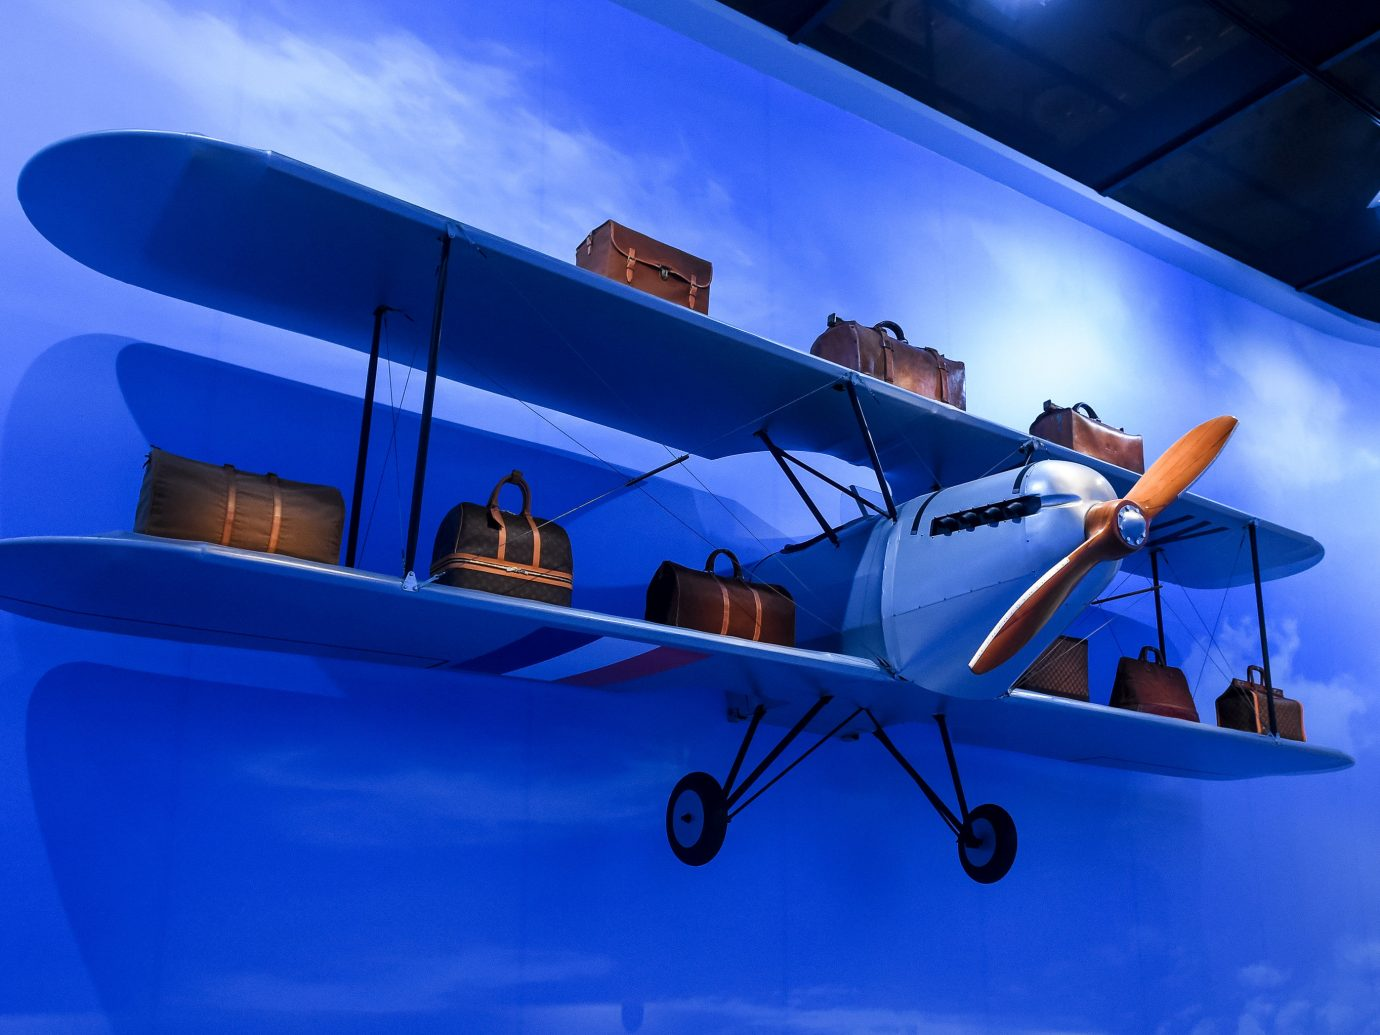 News Style + Design sky blue airplane aircraft plane aviation air travel aerospace engineering light aircraft wing propeller biplane propeller driven aircraft flight general aviation monoplane computer wallpaper engine